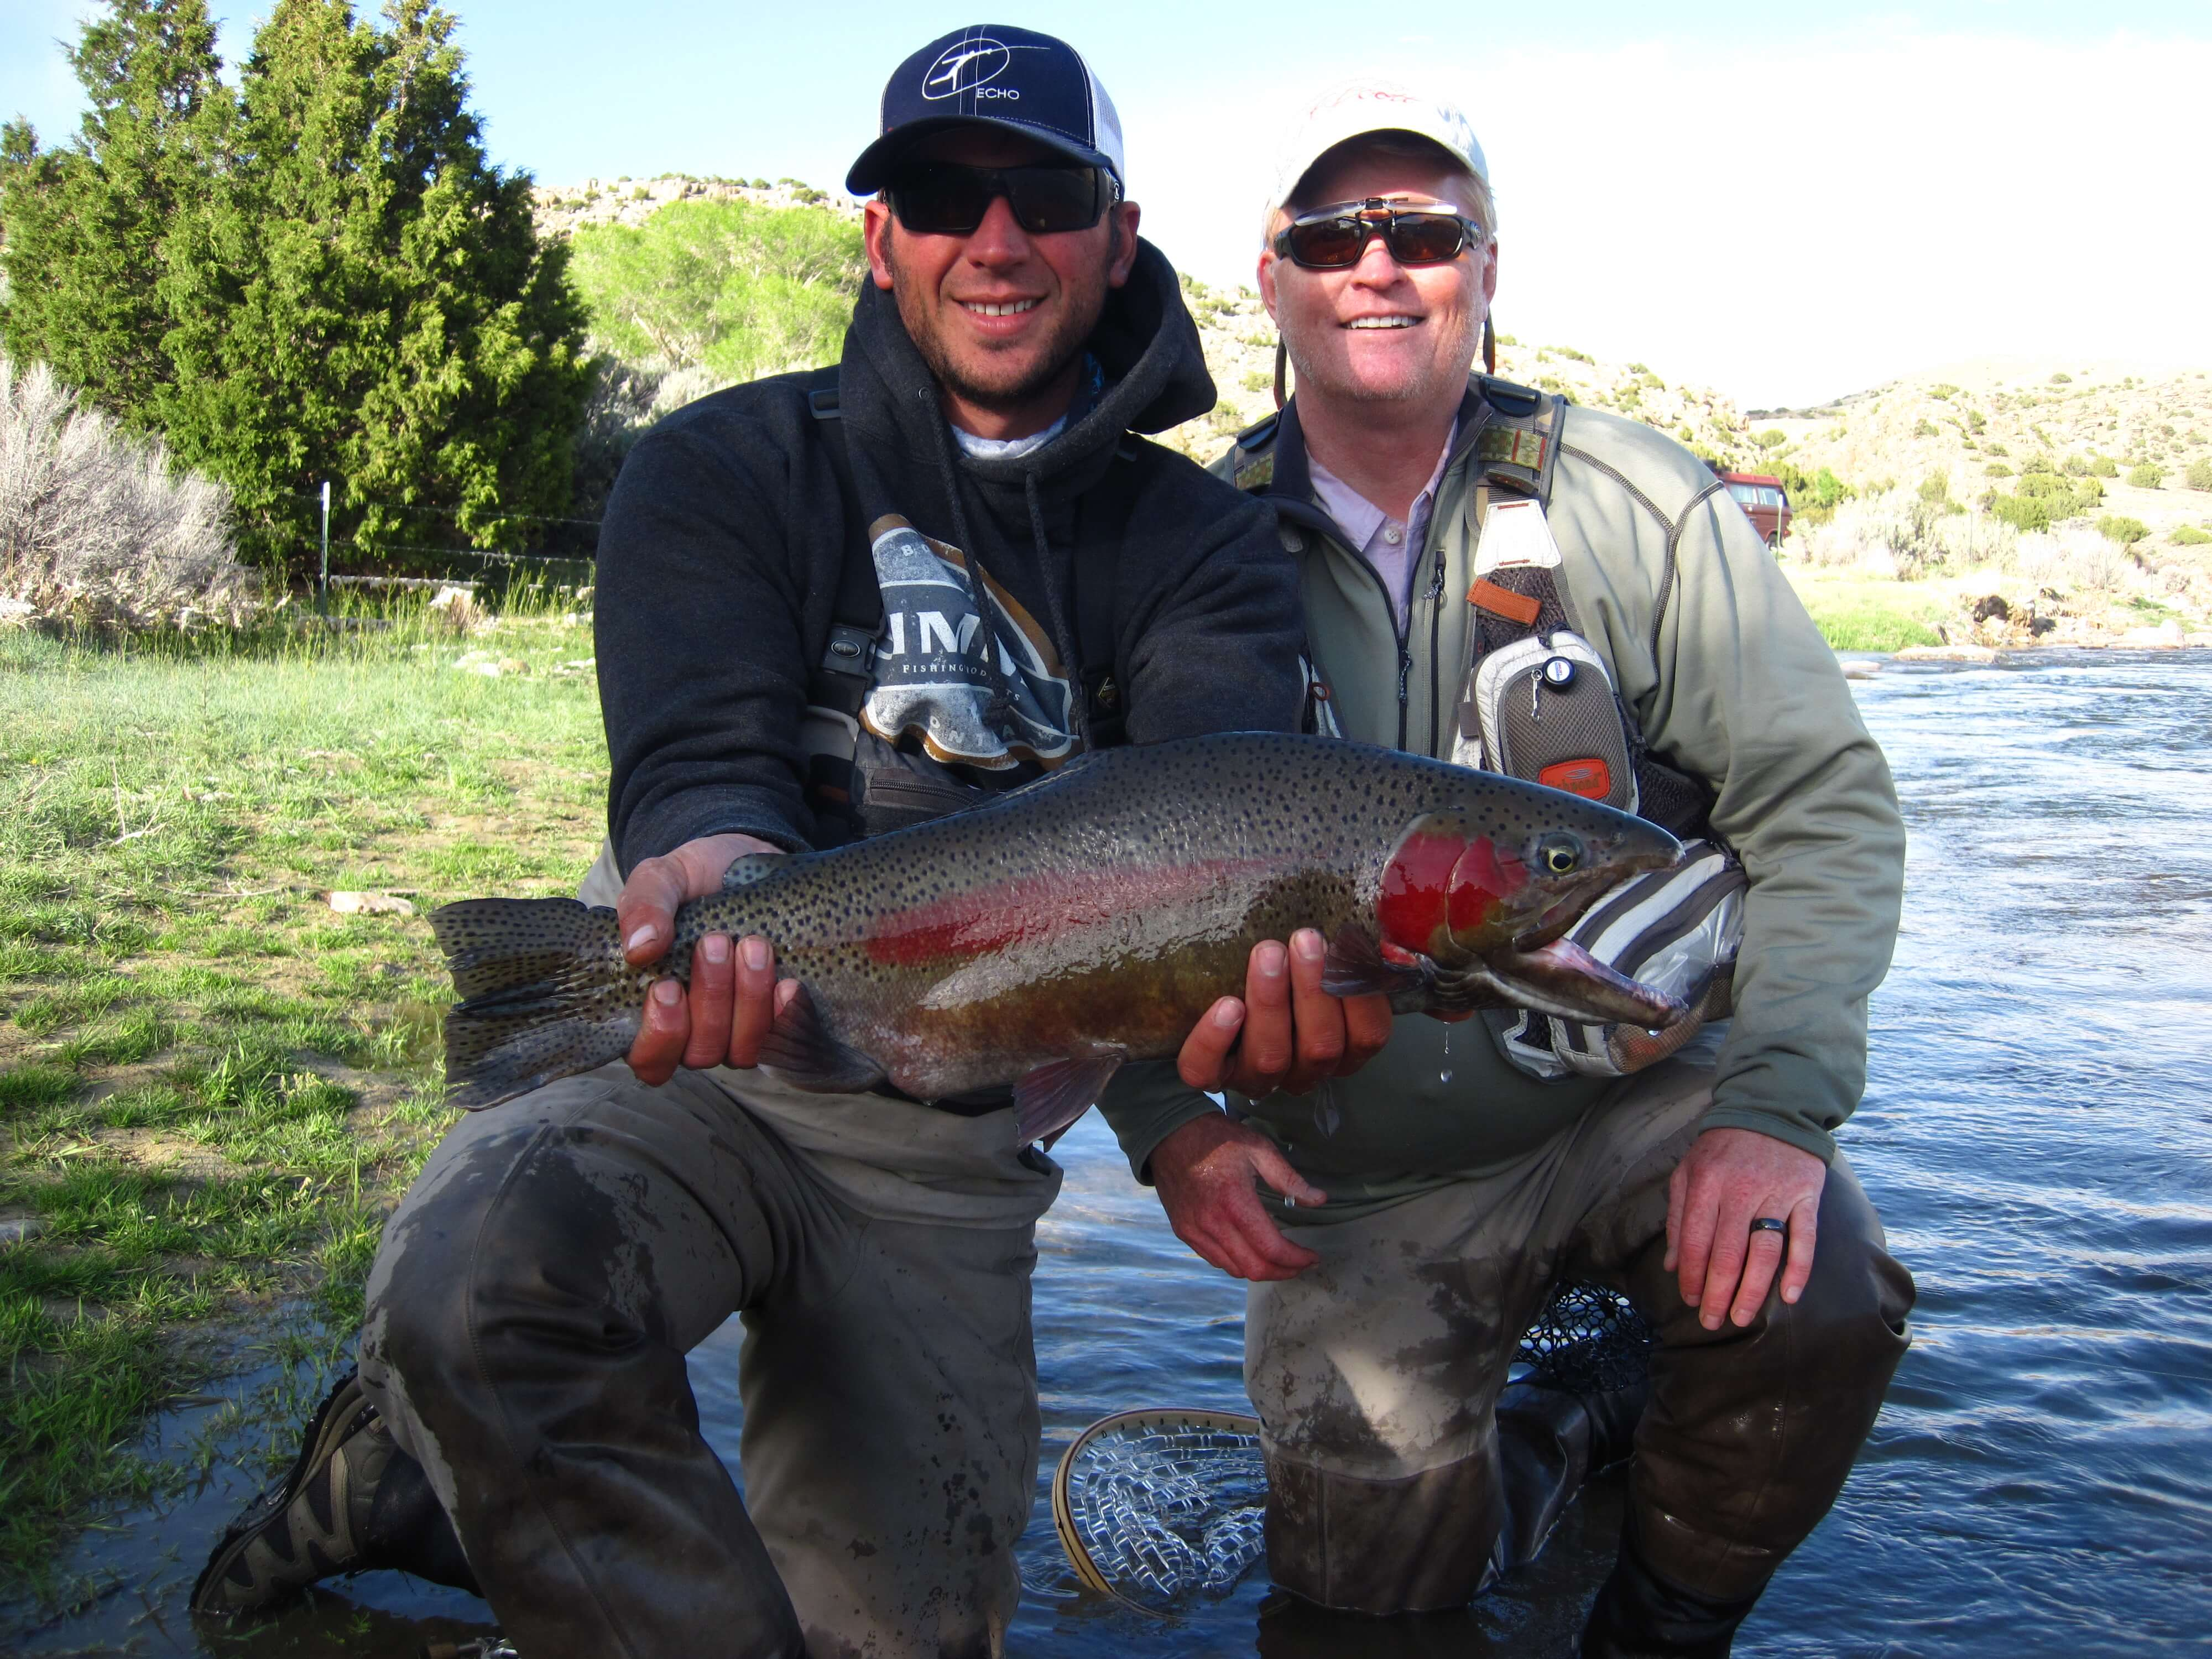 Wyoming fishing camping miracle mile minturn anglers for Miracle mile fishing